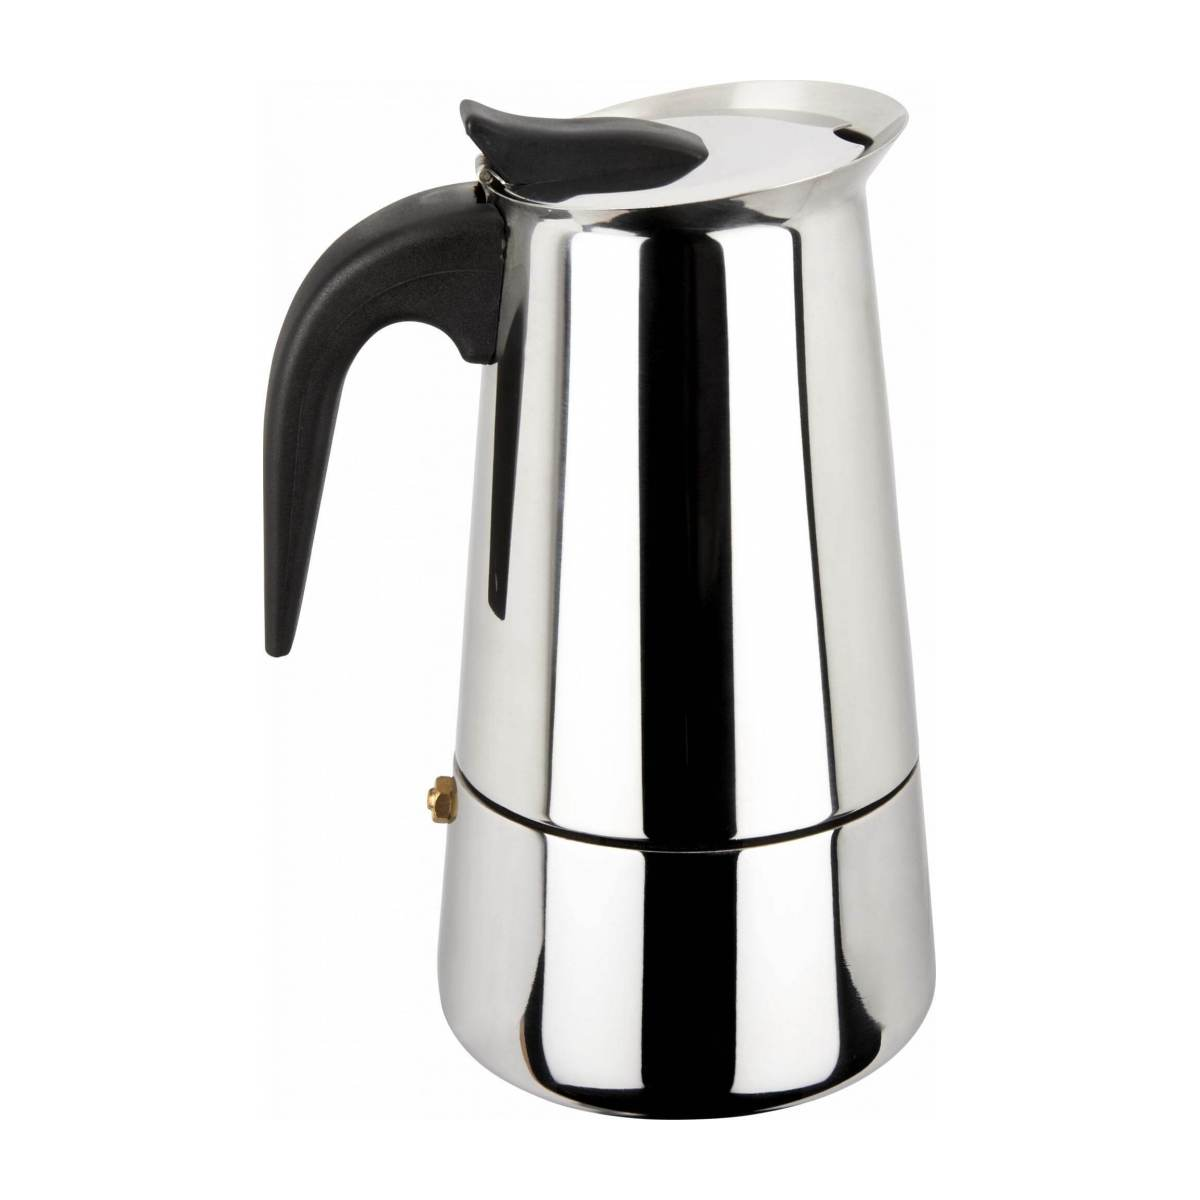 Stainless steel coffee maker n°2